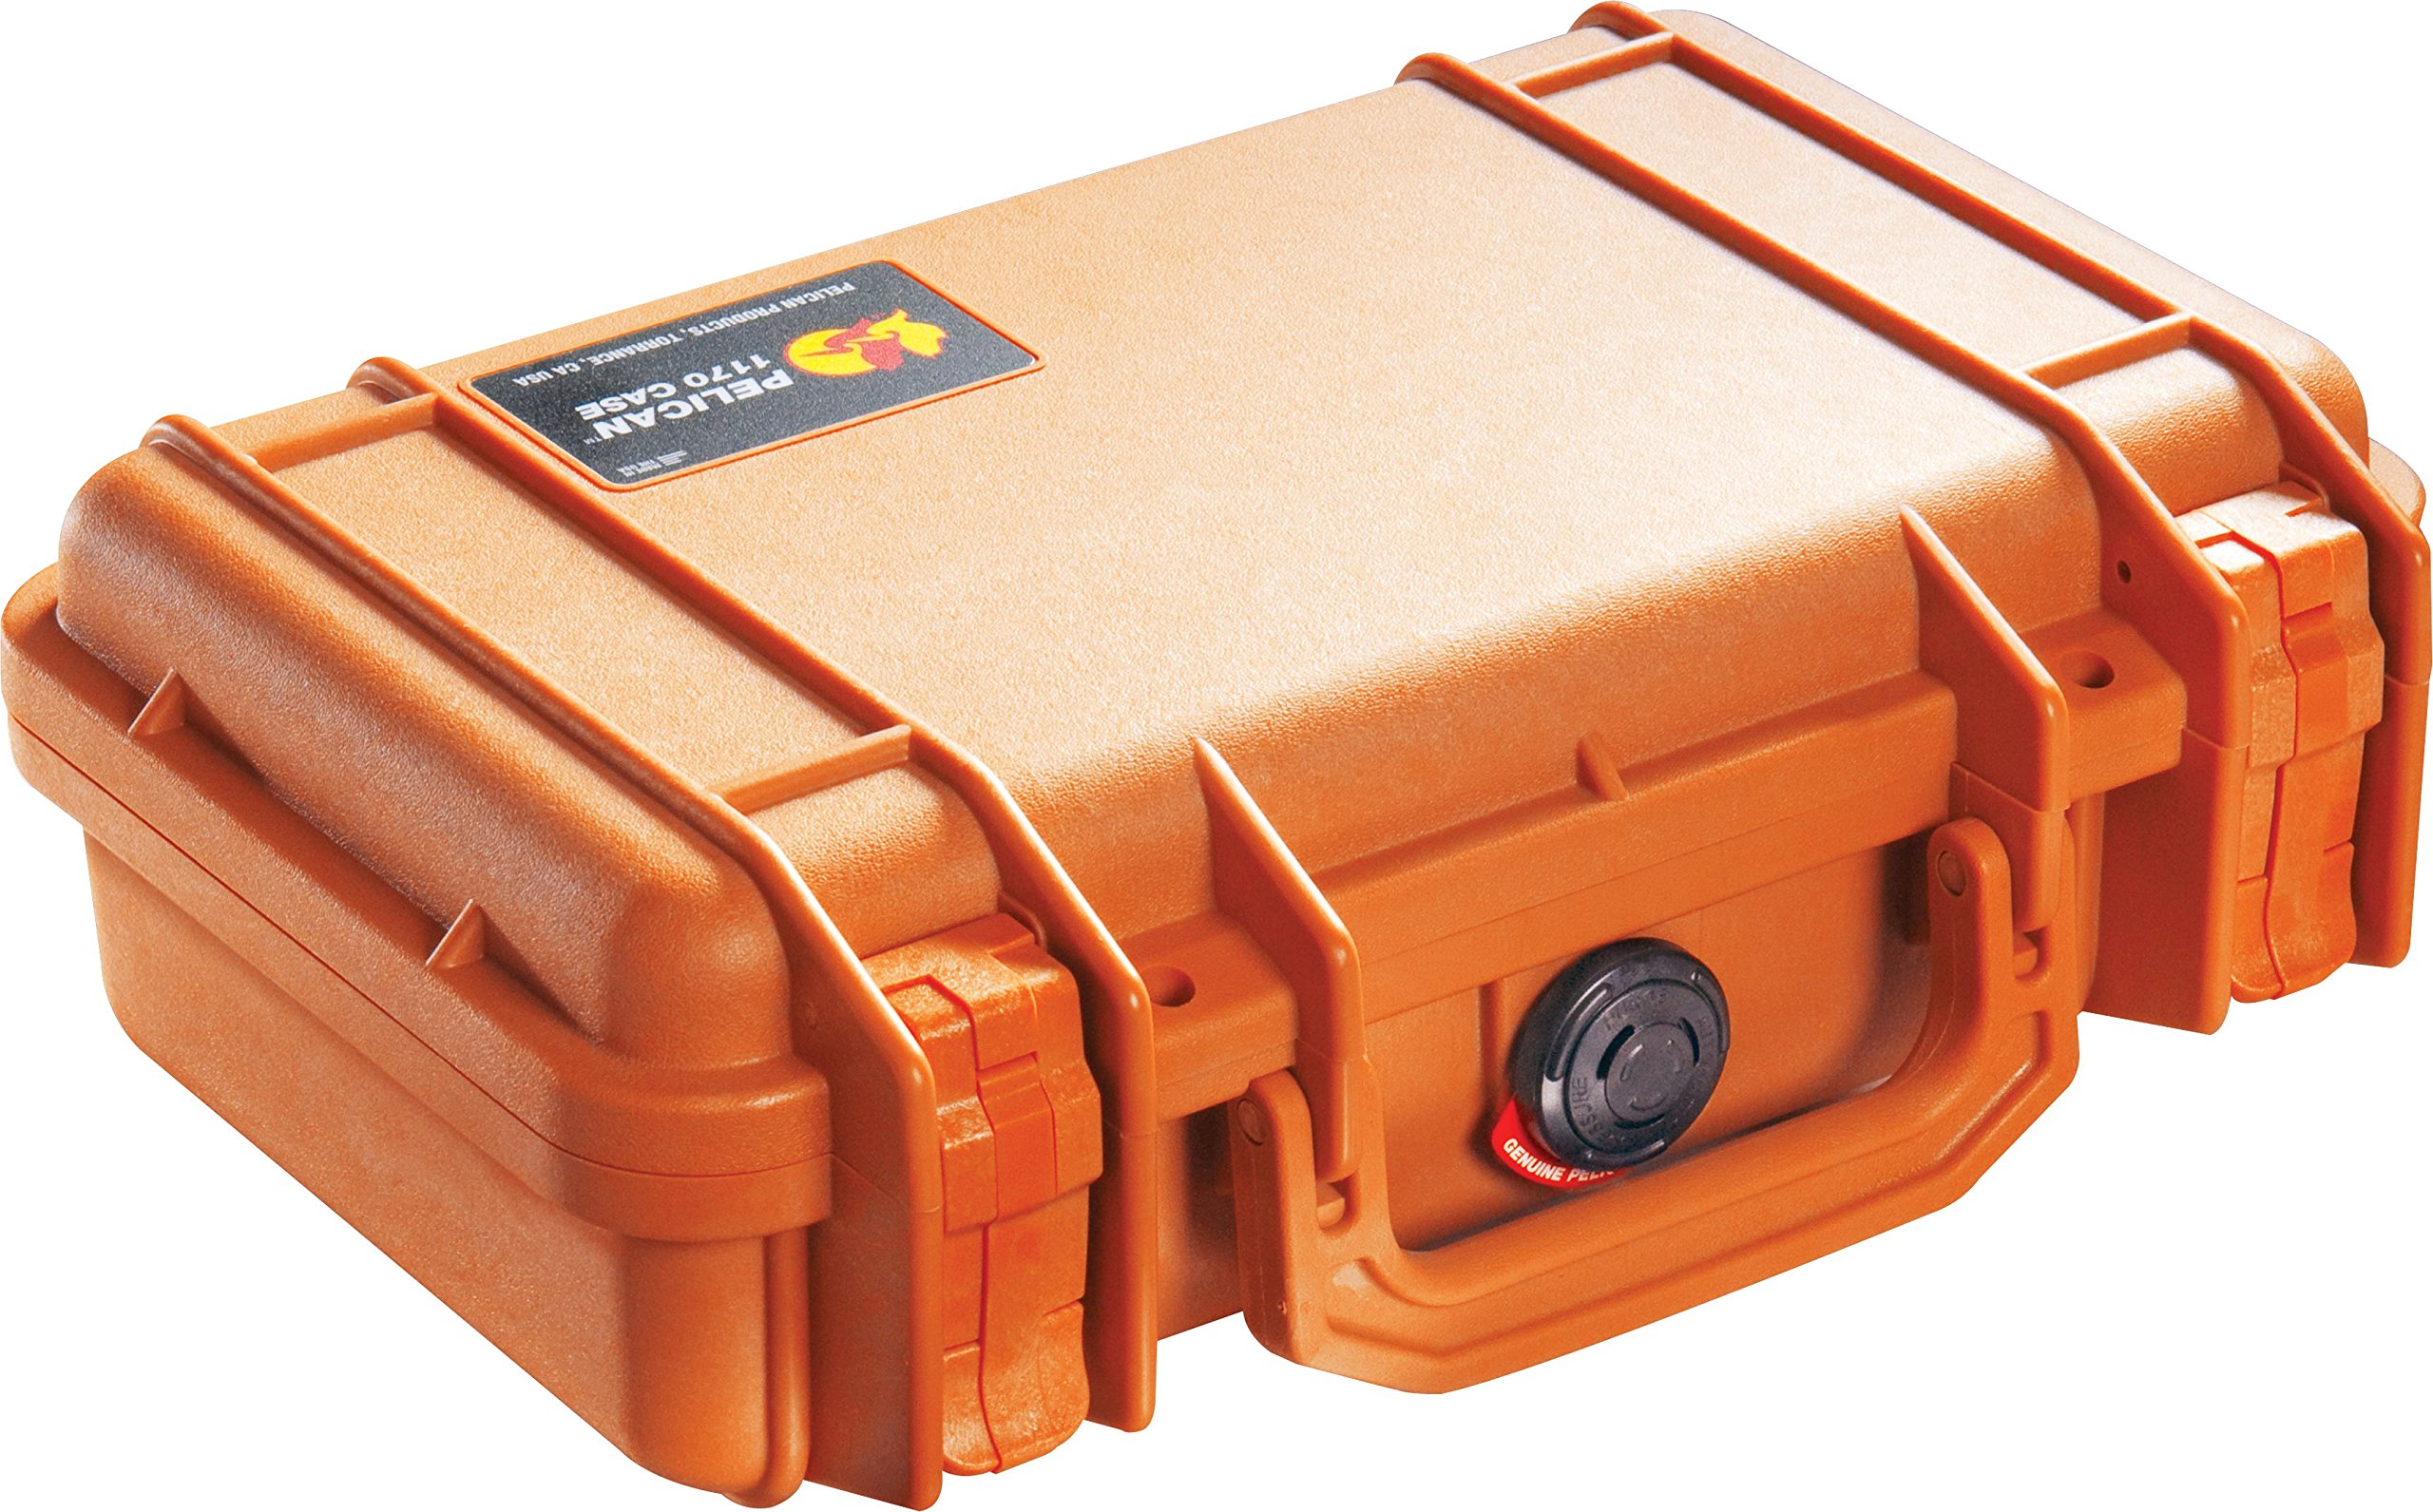 Pelican 1170 Case With Foam (Orange) by Pelican